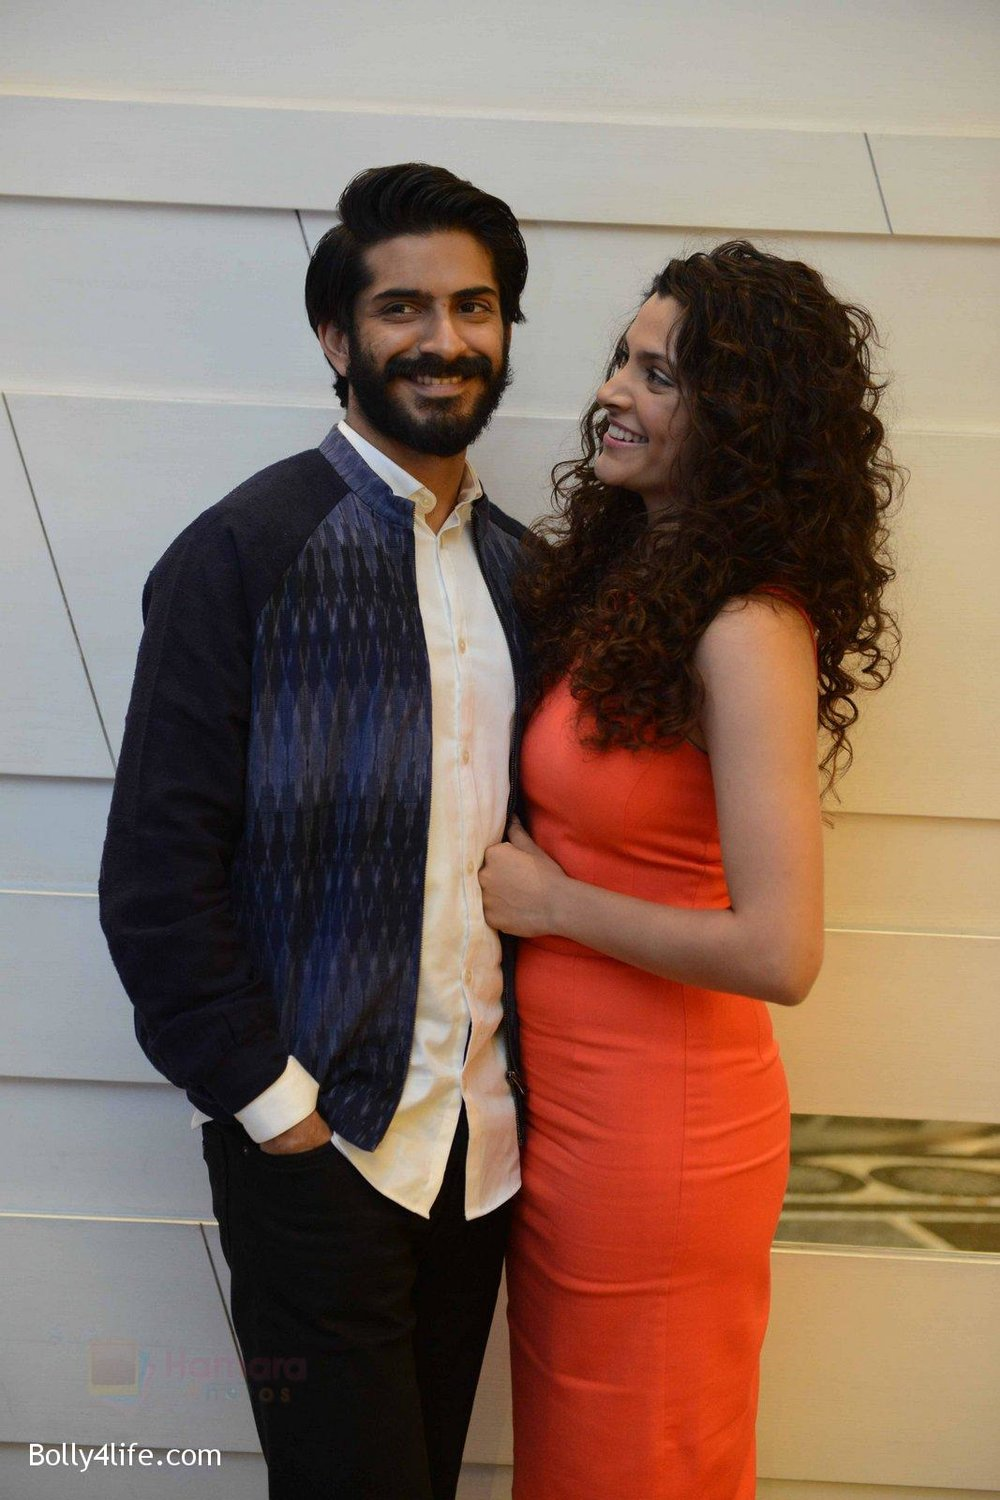 Harshvardhan-Kapoor-Saiyami-Kher-at-Mirzya-press-meet-in-Delhi-on-3rd-Oct-2016-77.jpg